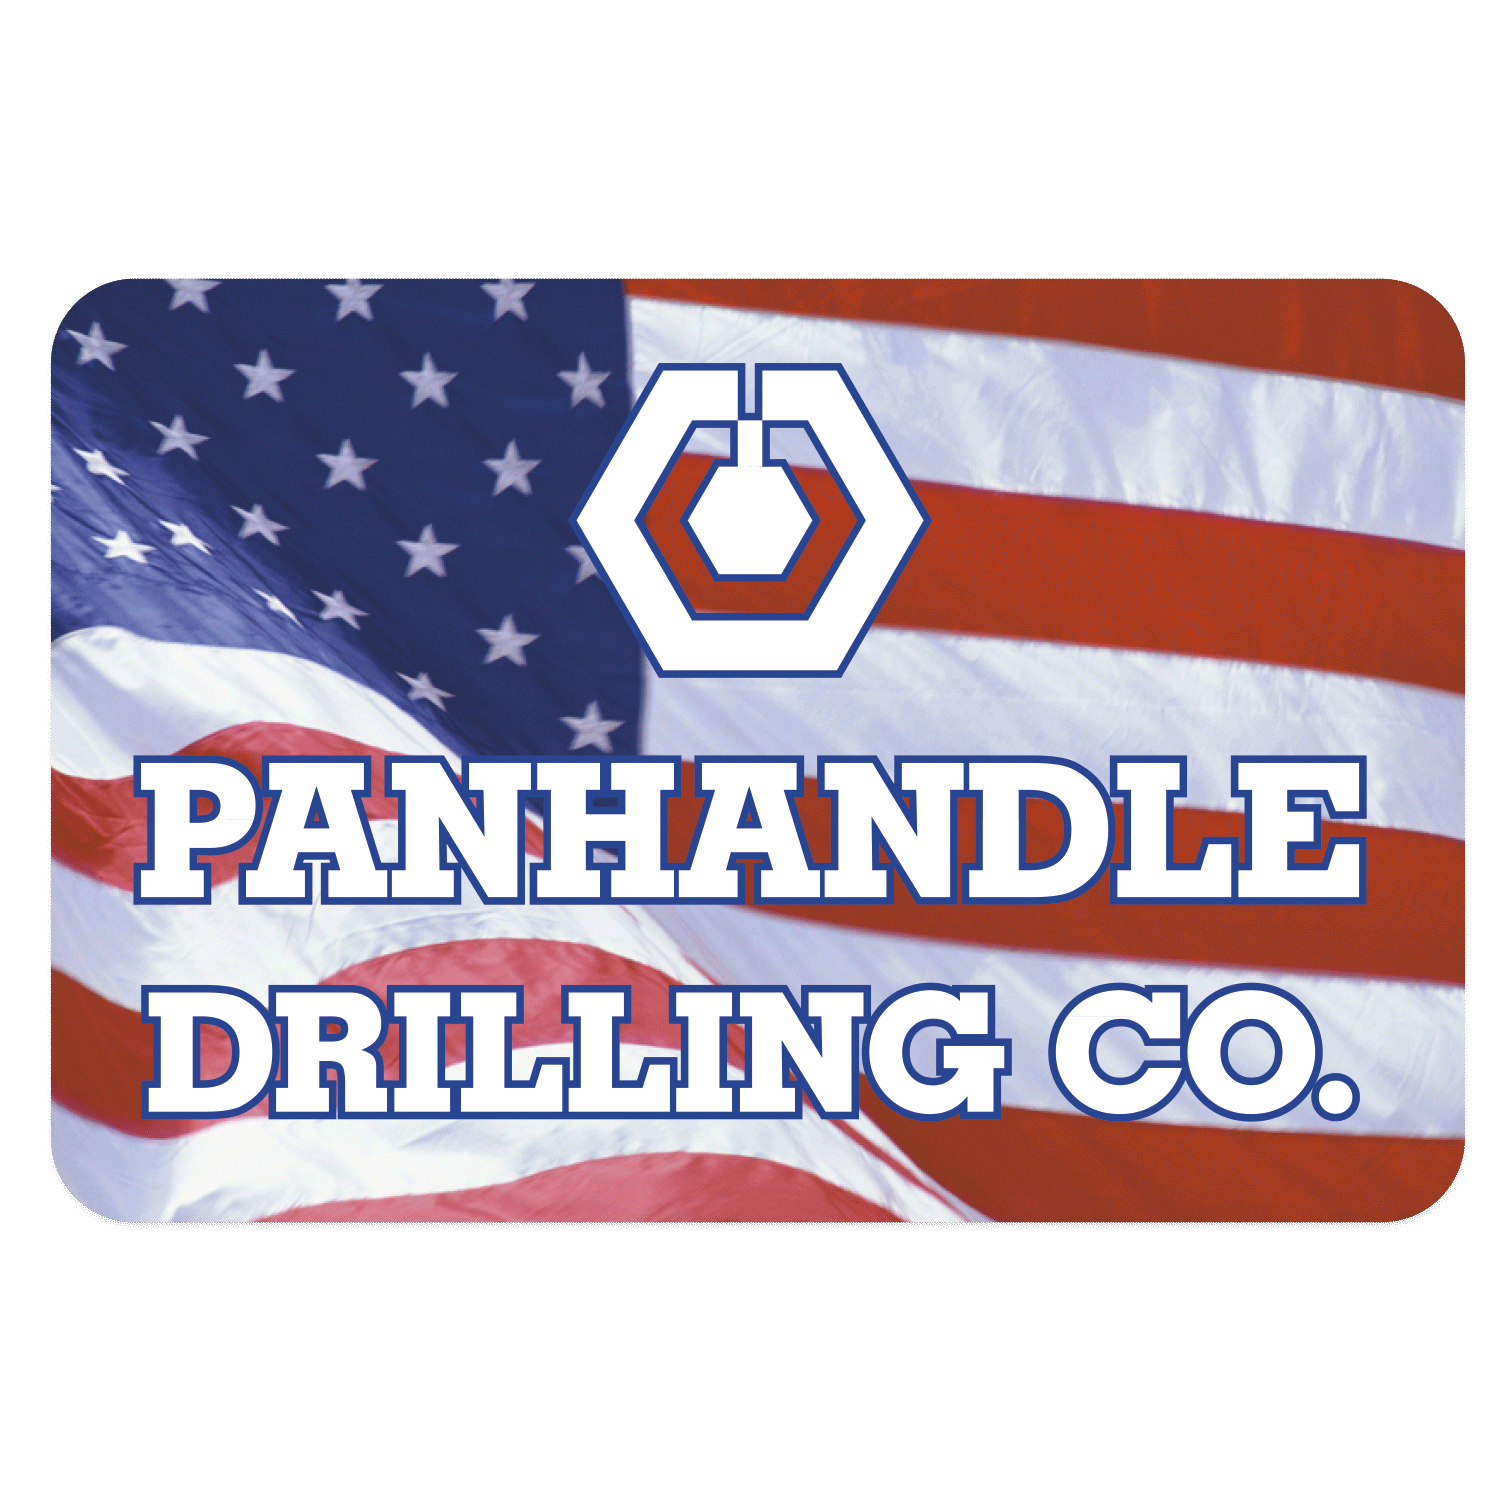 https://www.sswprinting.com/images/products_gallery_images/13305_Panhandle-Drilling_hi-res.png